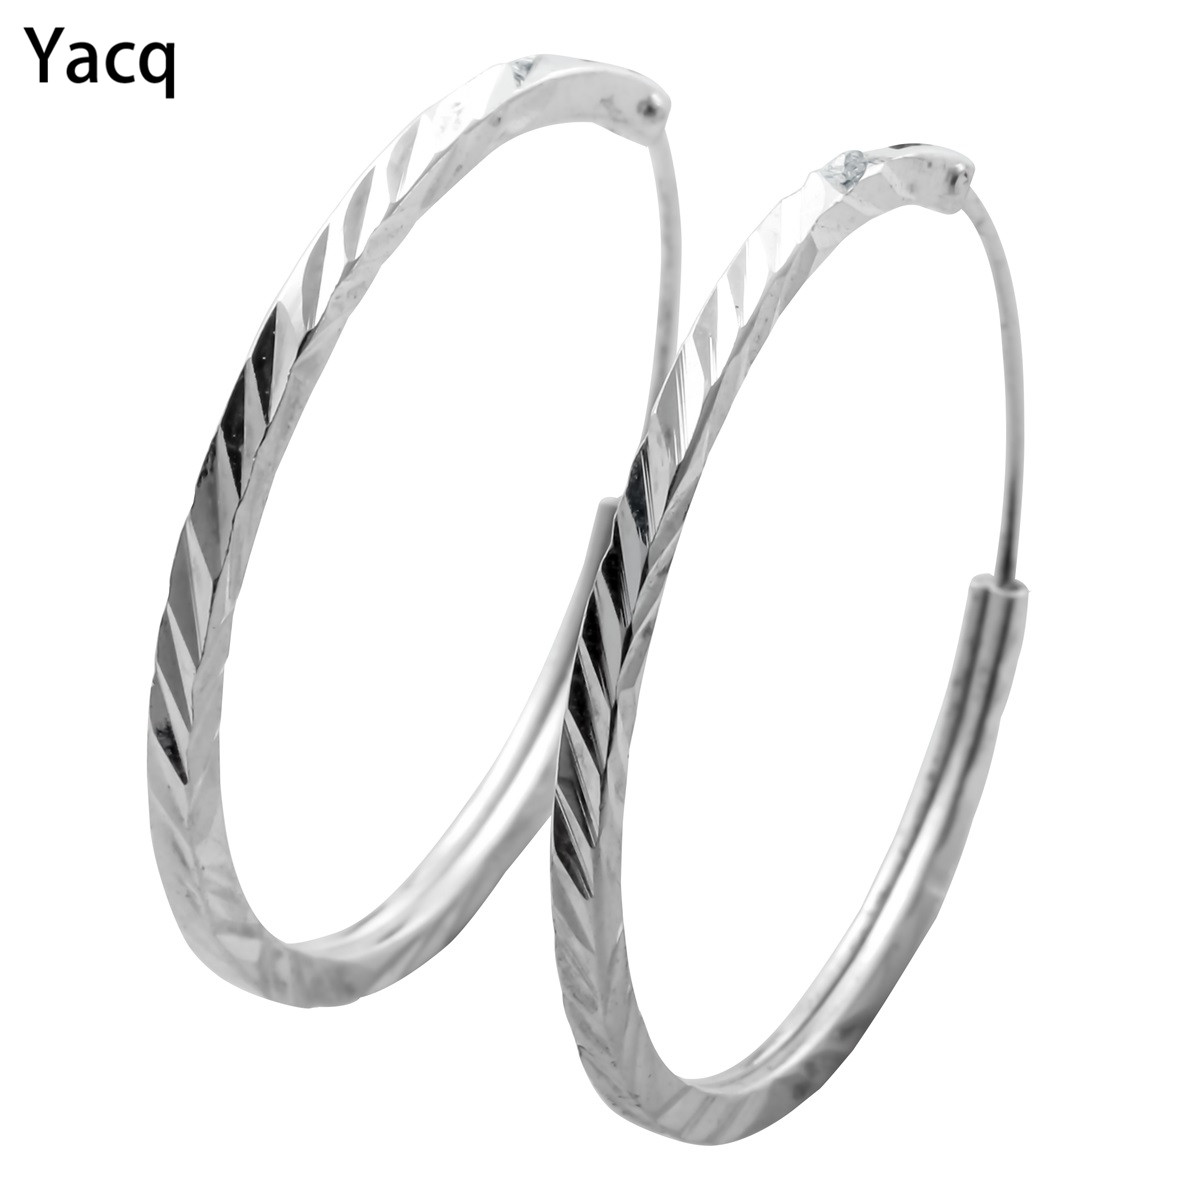 YACQ 925 Sterling Silver Hoop Earrings Birthday Party Jewelry Gifts for Women Girlfriend Her Mom Wife Dropshipping CE46